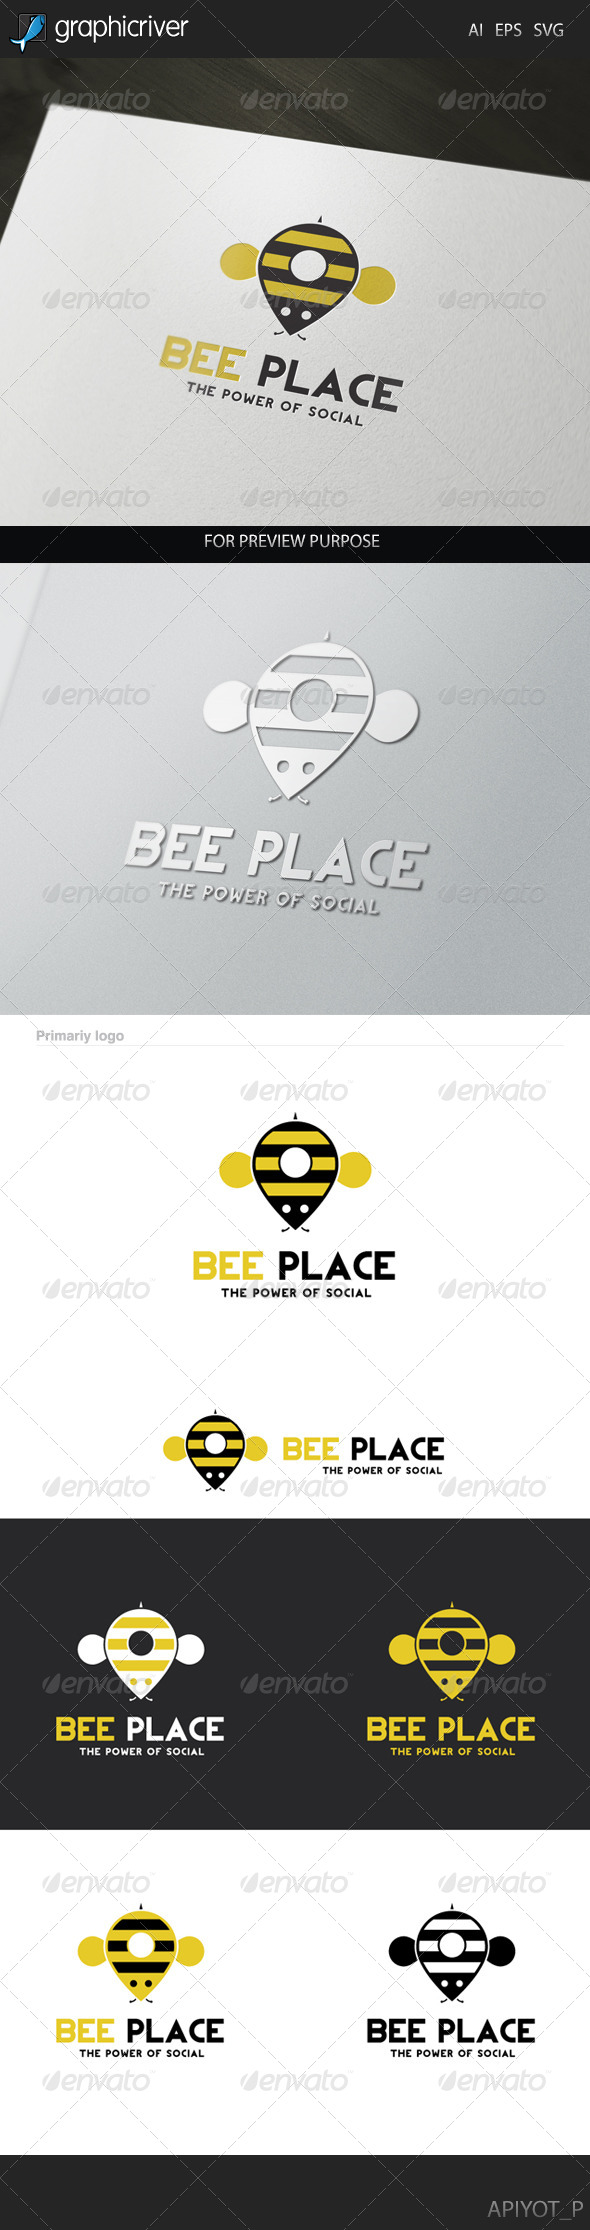 Bee Place Logo